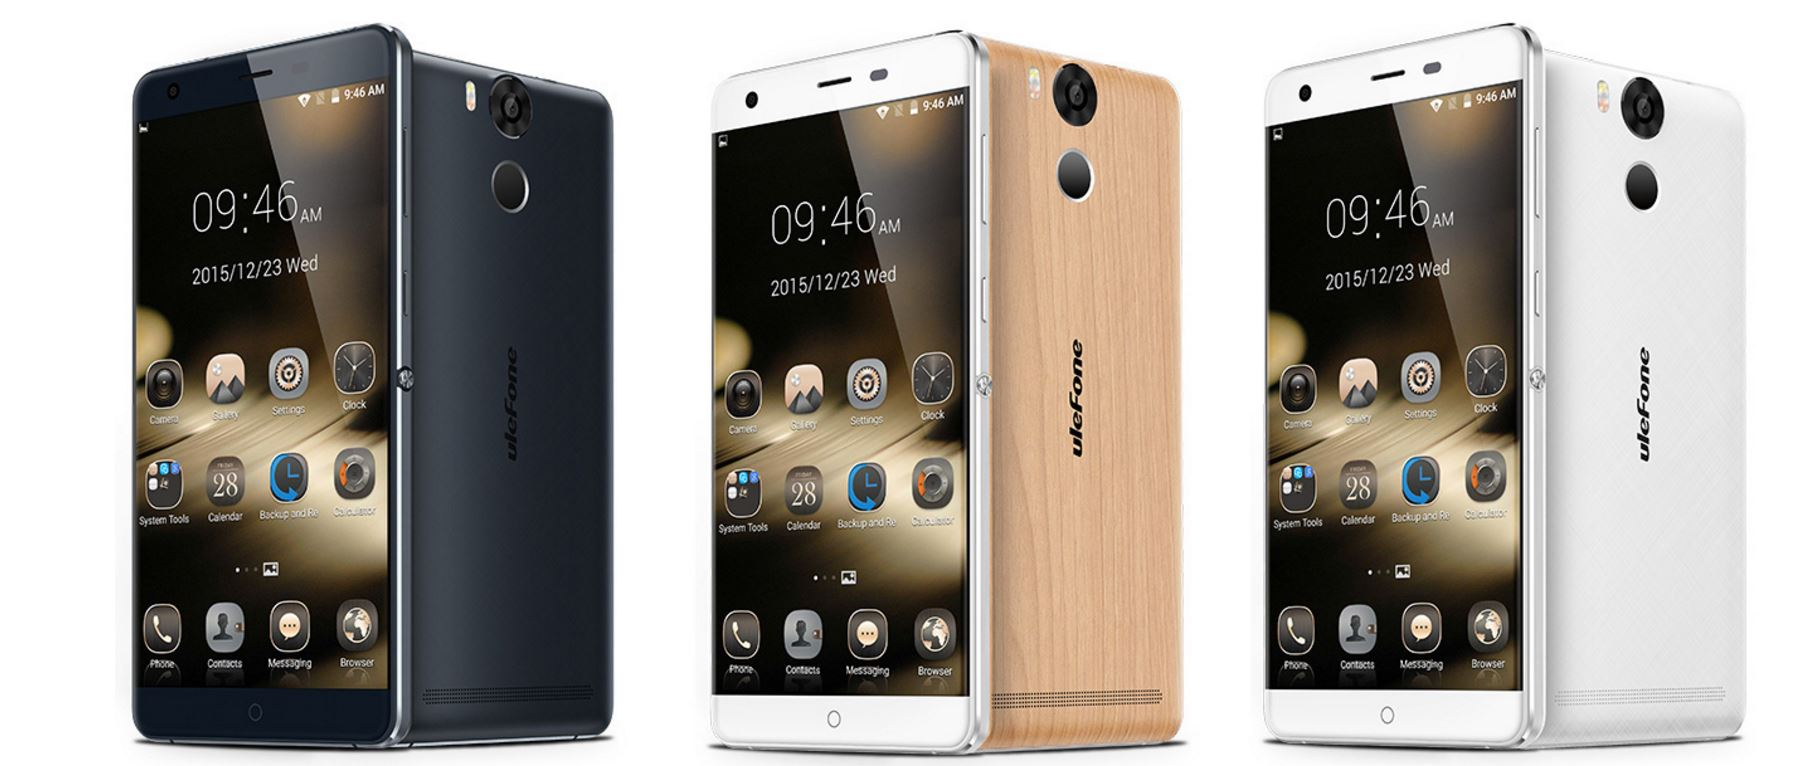 Colores del phablet Ulefone Power